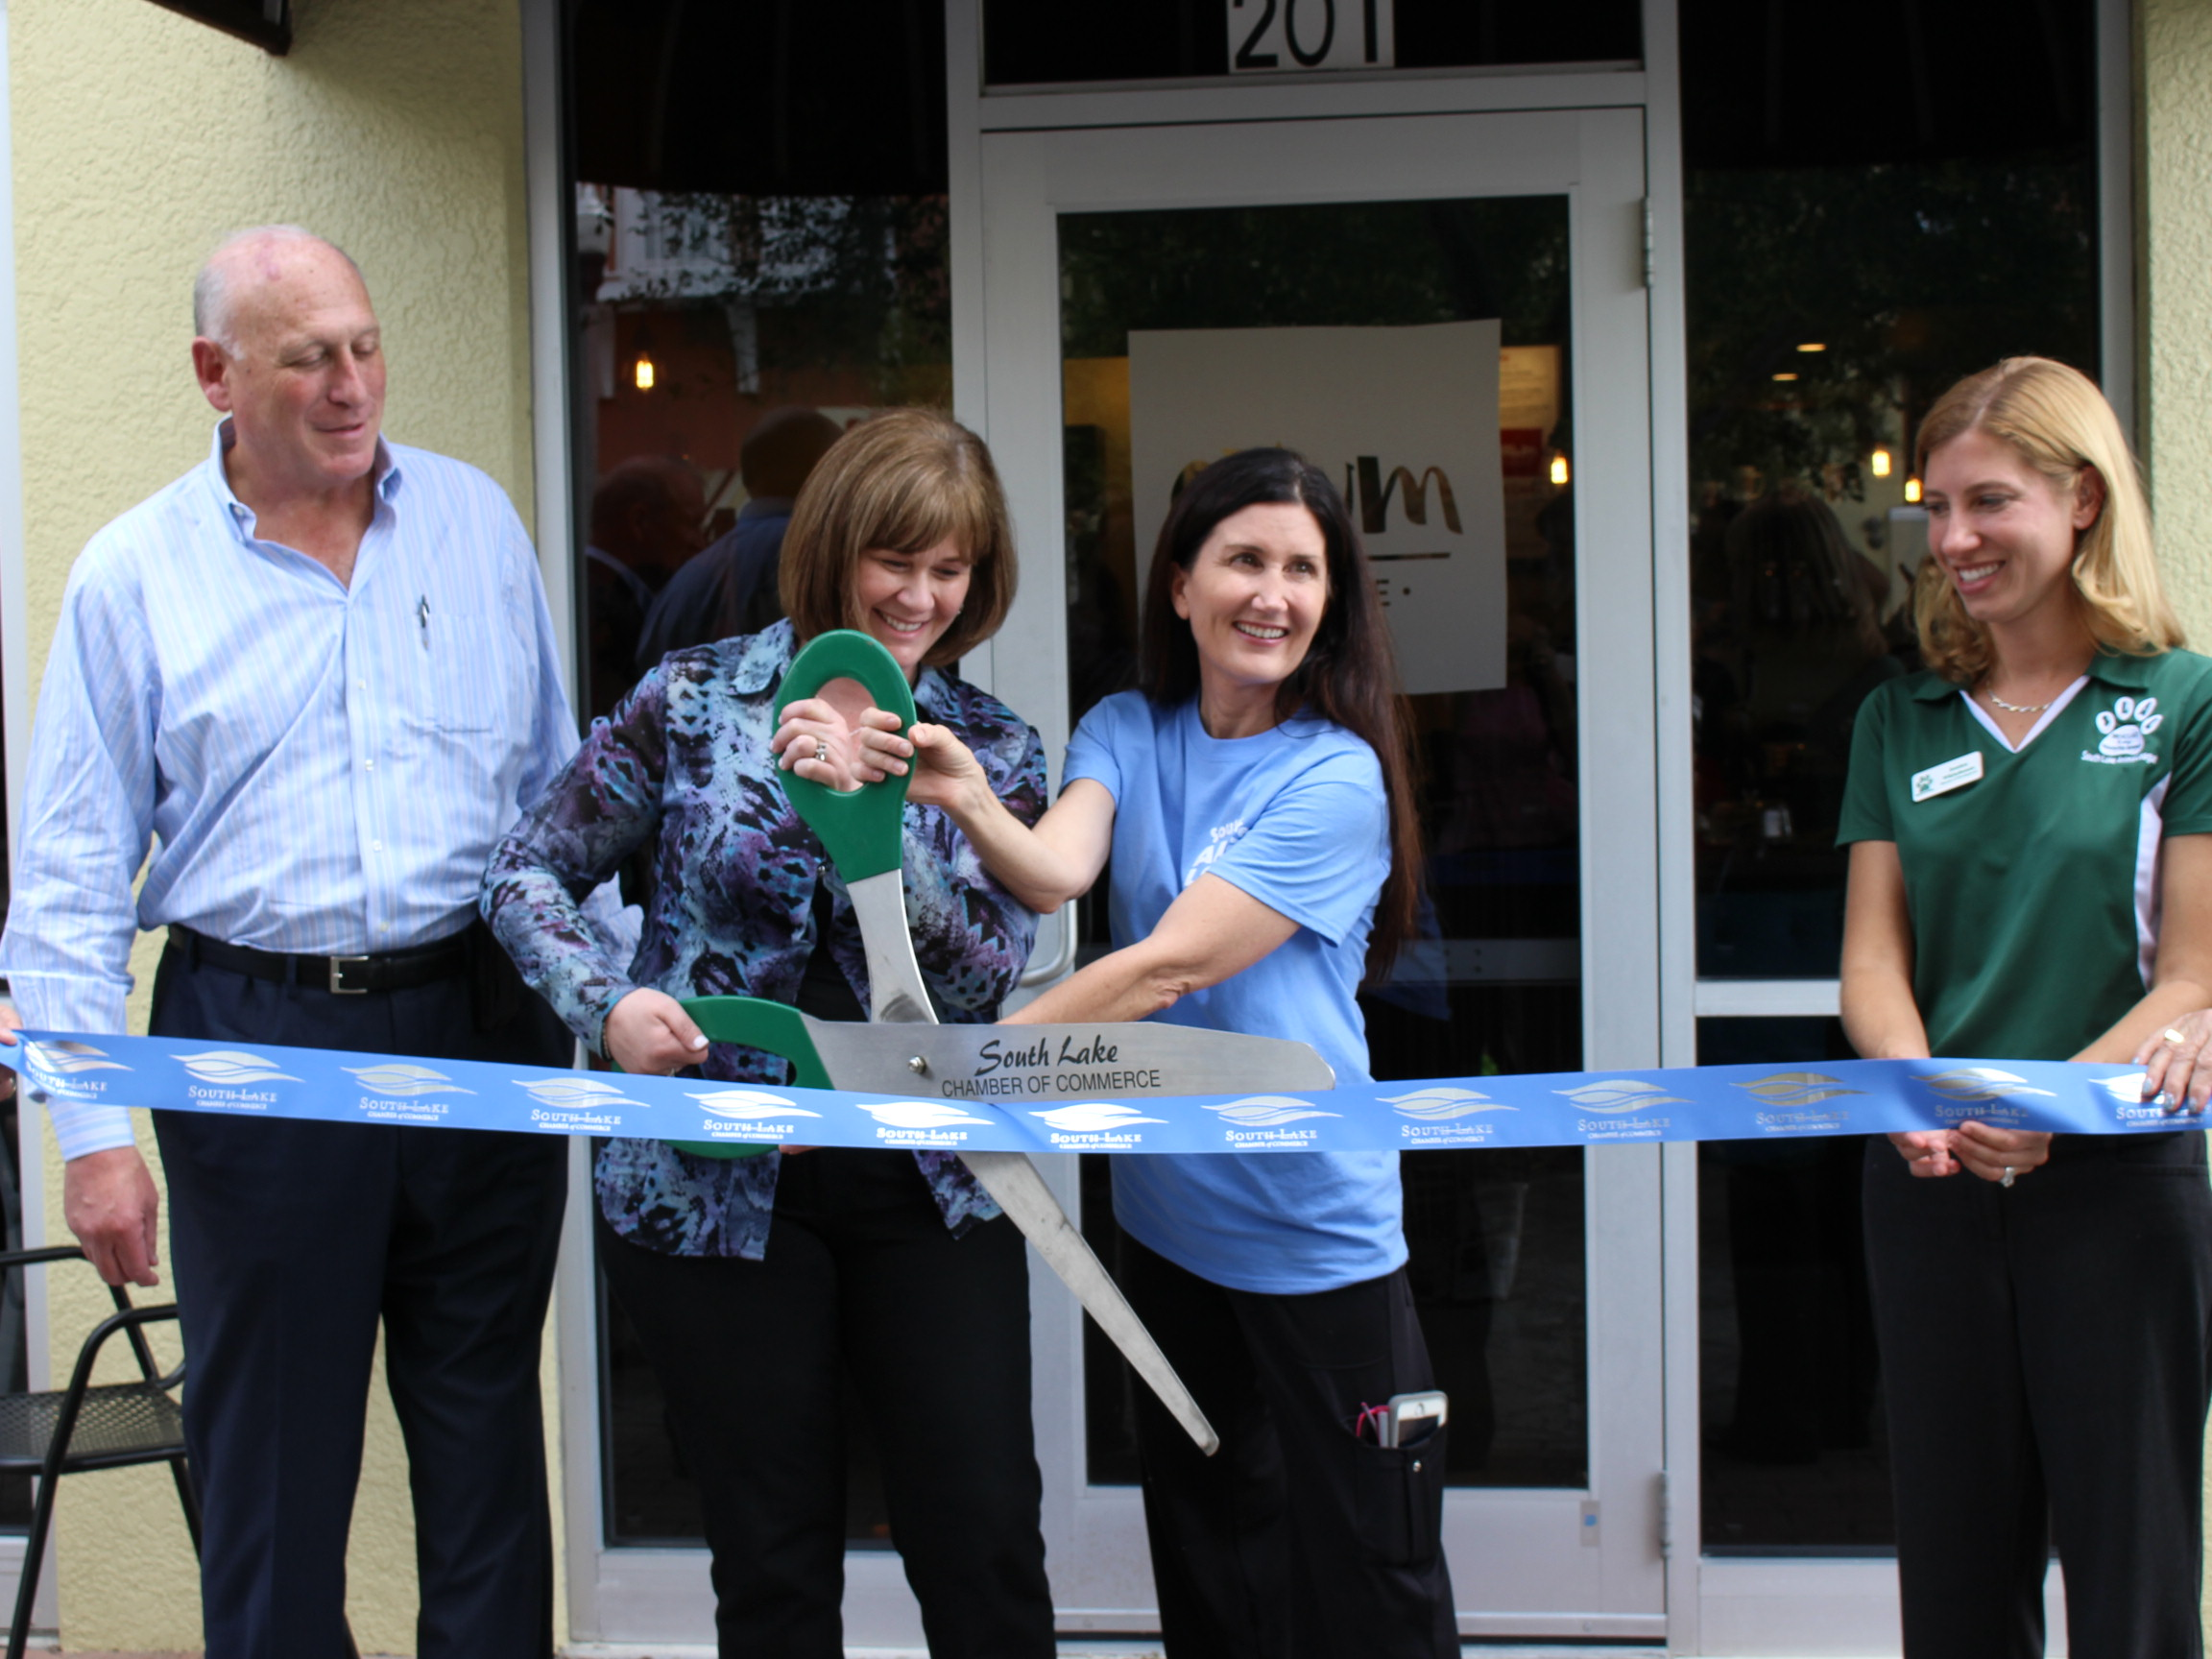 Sandra Cagan, the founder of Orlando Cat Cafe (pictured left), and Jessica Whitehouse, the director of development at The Animal League (pictured right), cut the ceremonial ribbon at the grand opening of Orlando Cat Cafe on Thursday.